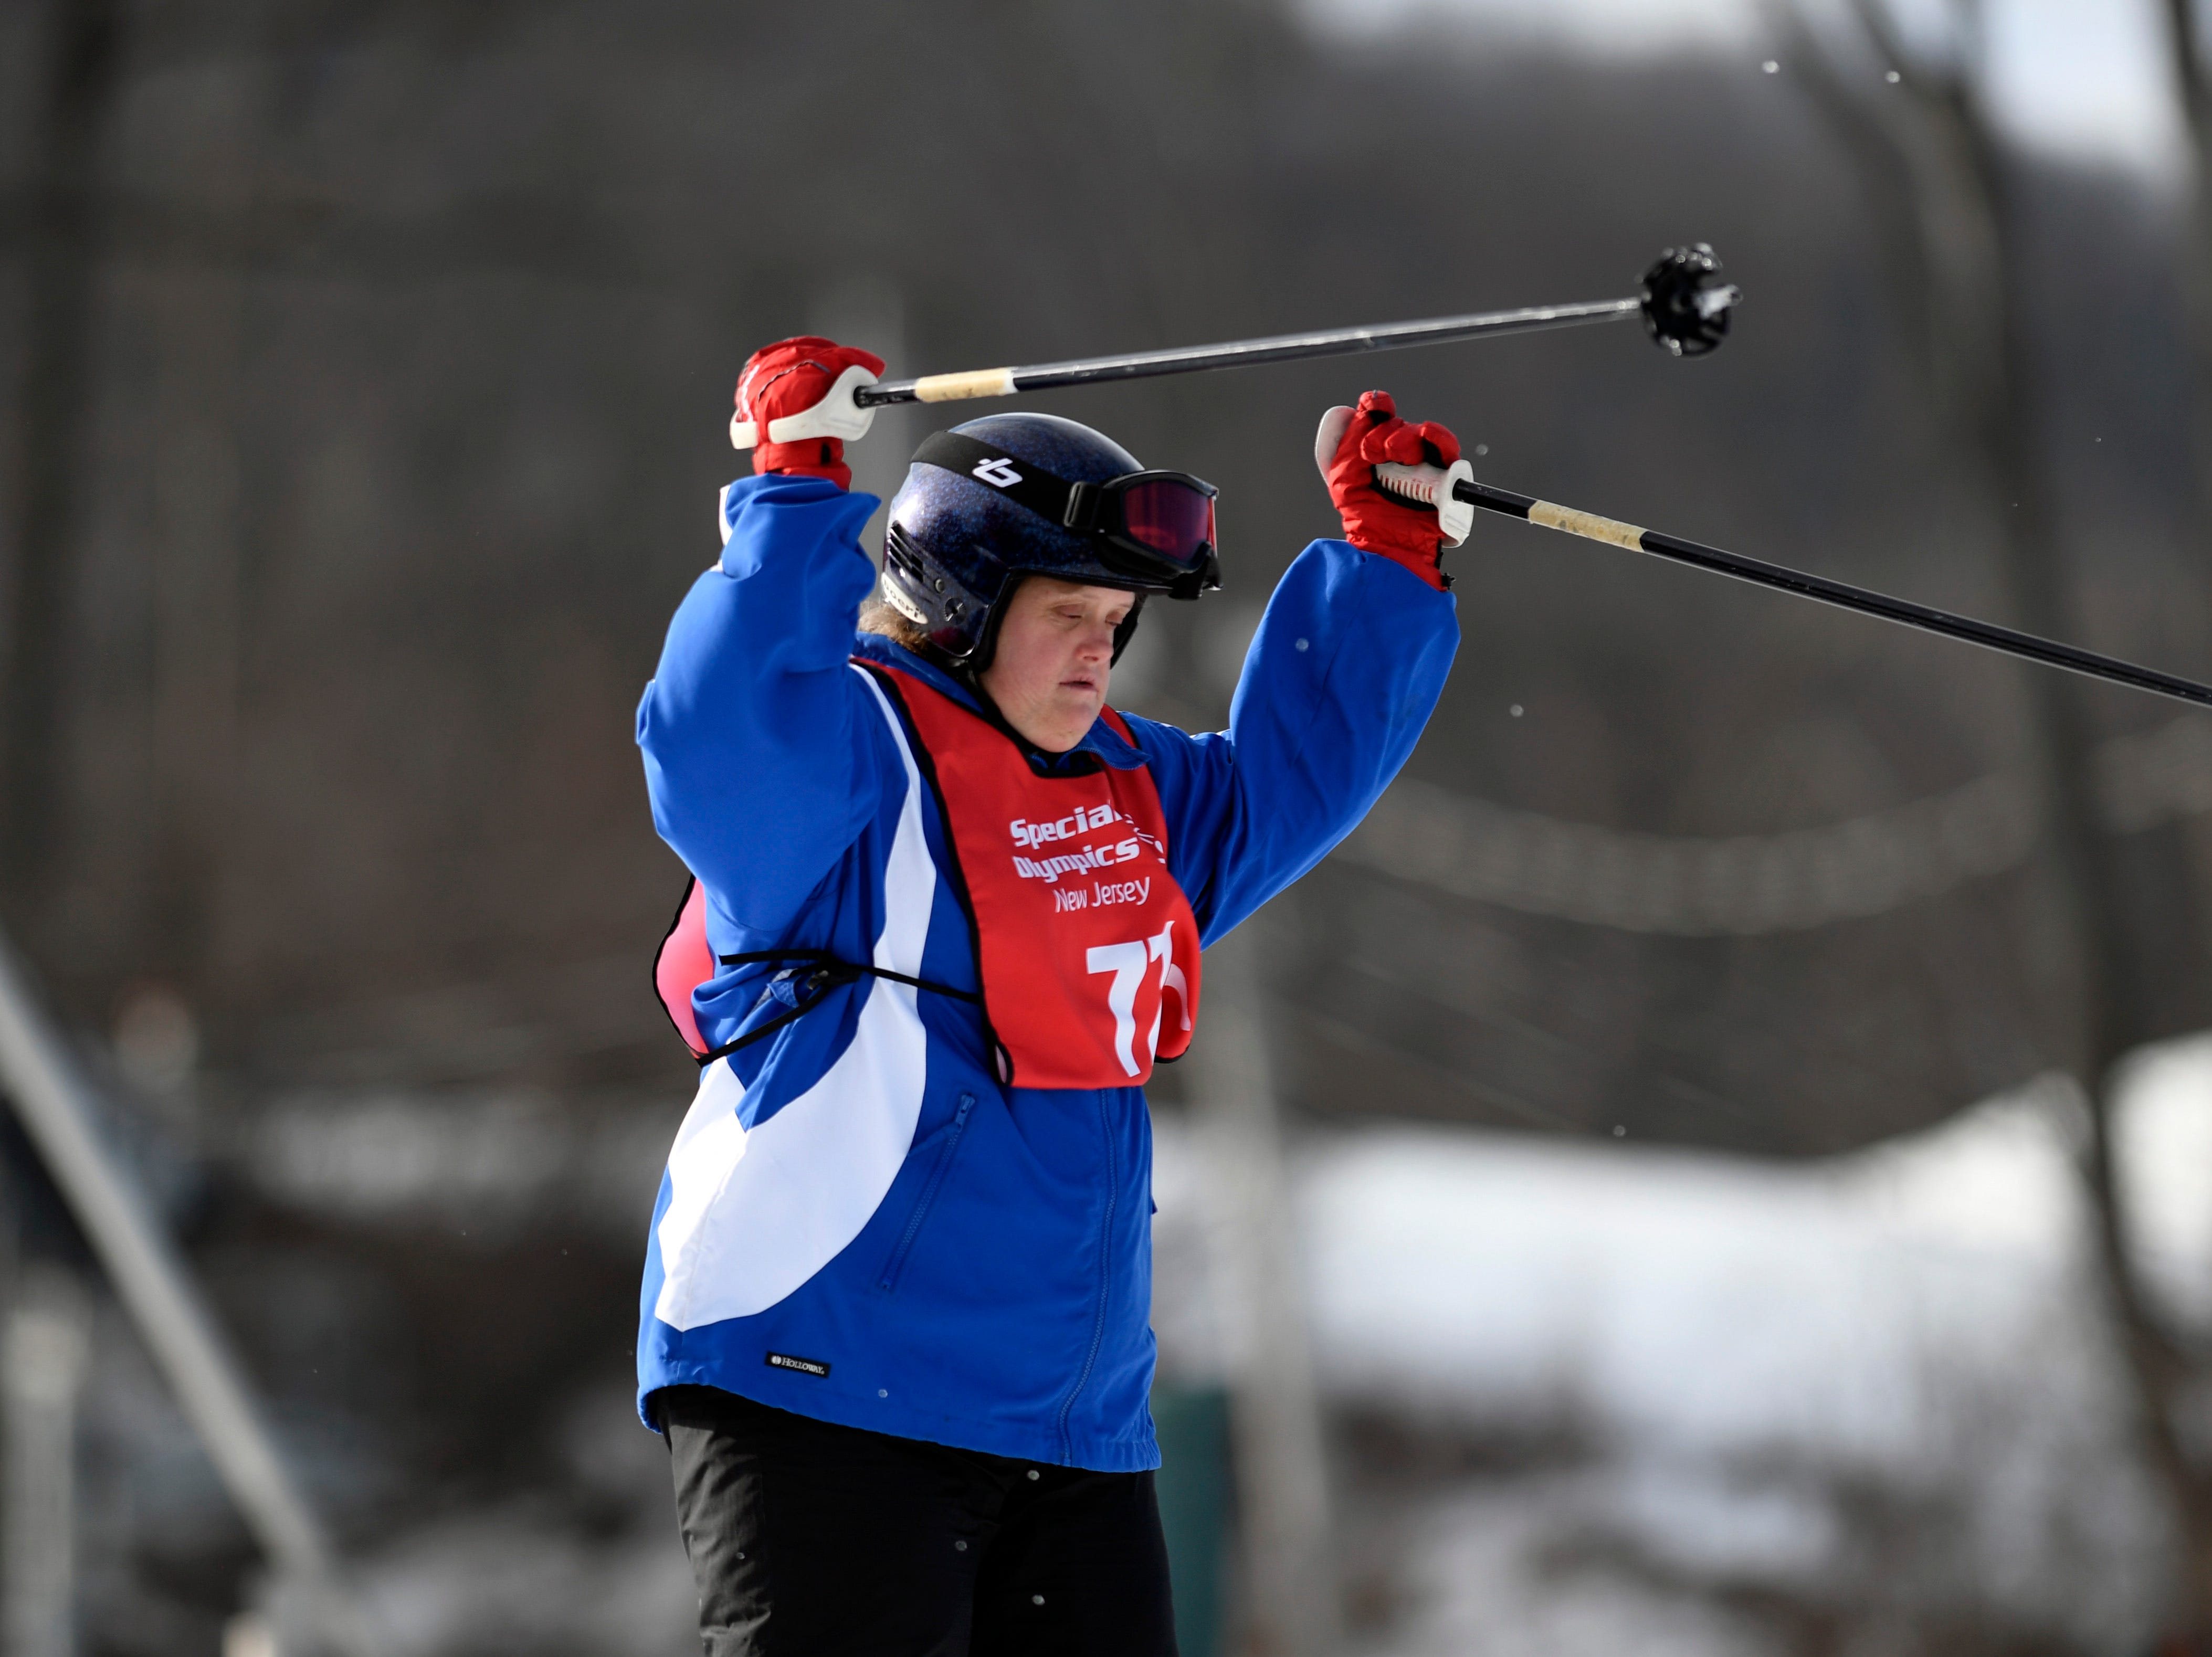 Linda Kent of Paramus holds her skis up in the air as she crosses the finish line of the giant slalom during the Special Olympics New Jersey 2019 Winter Games on Tuesday, Feb. 5, 2019, in Vernon.